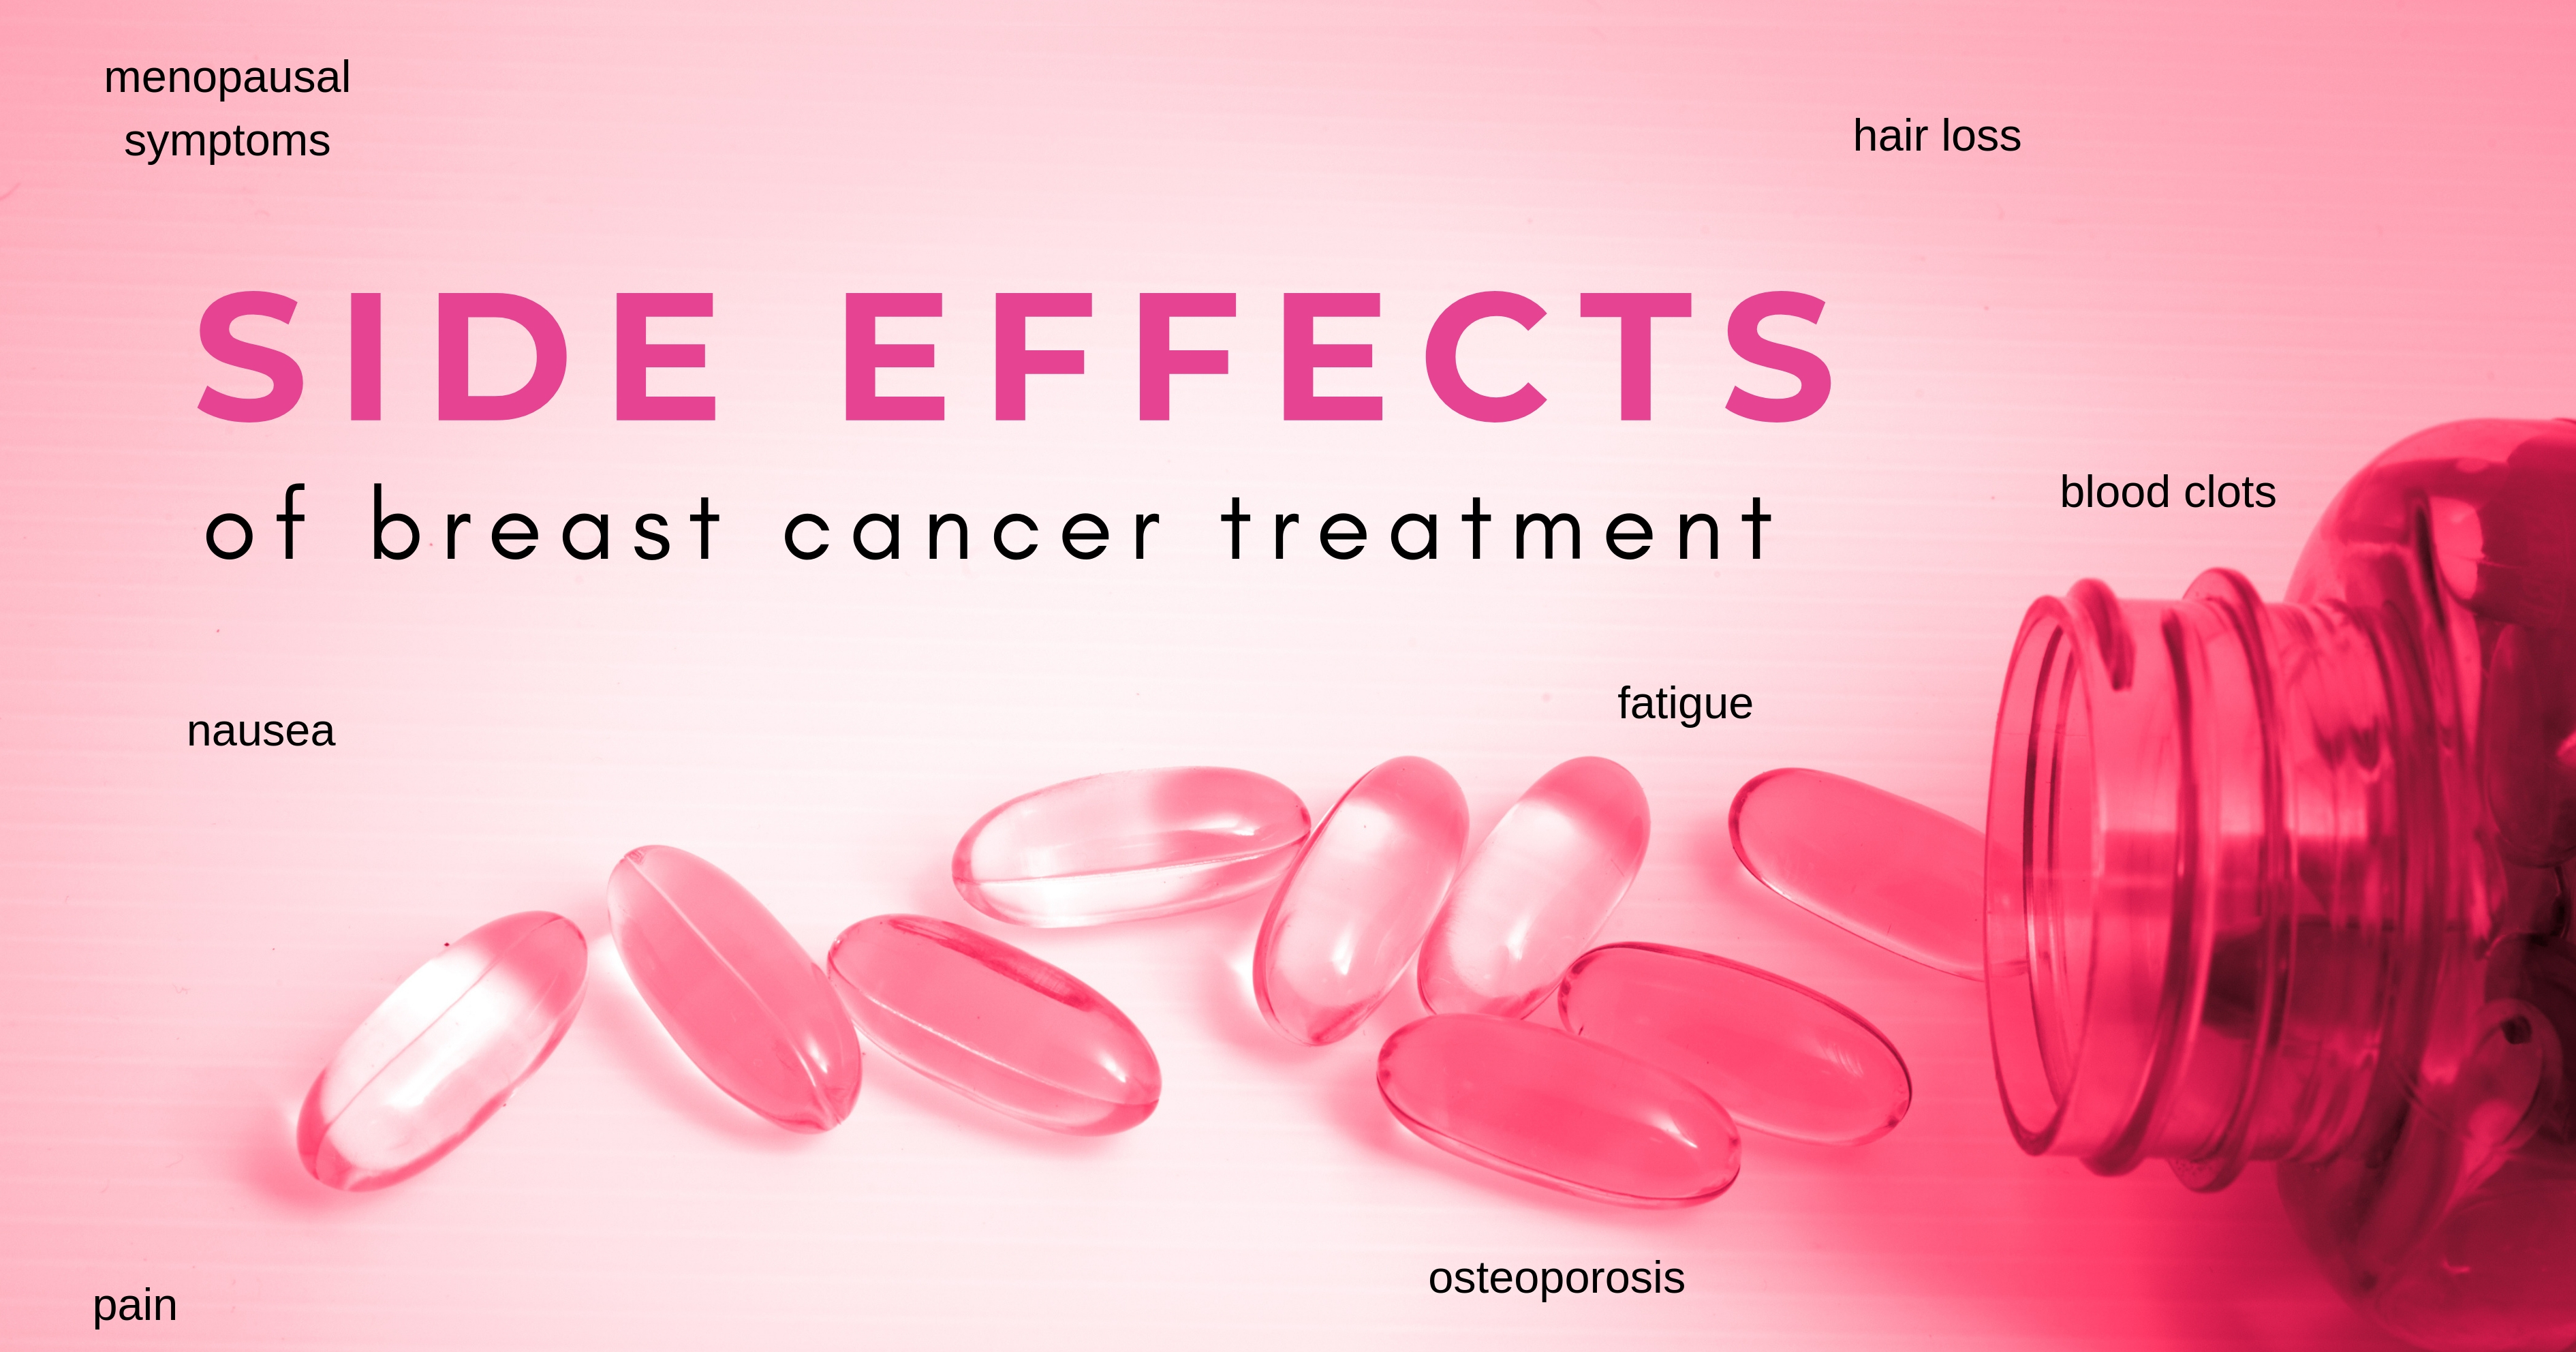 Side effects of breast cancer treatment